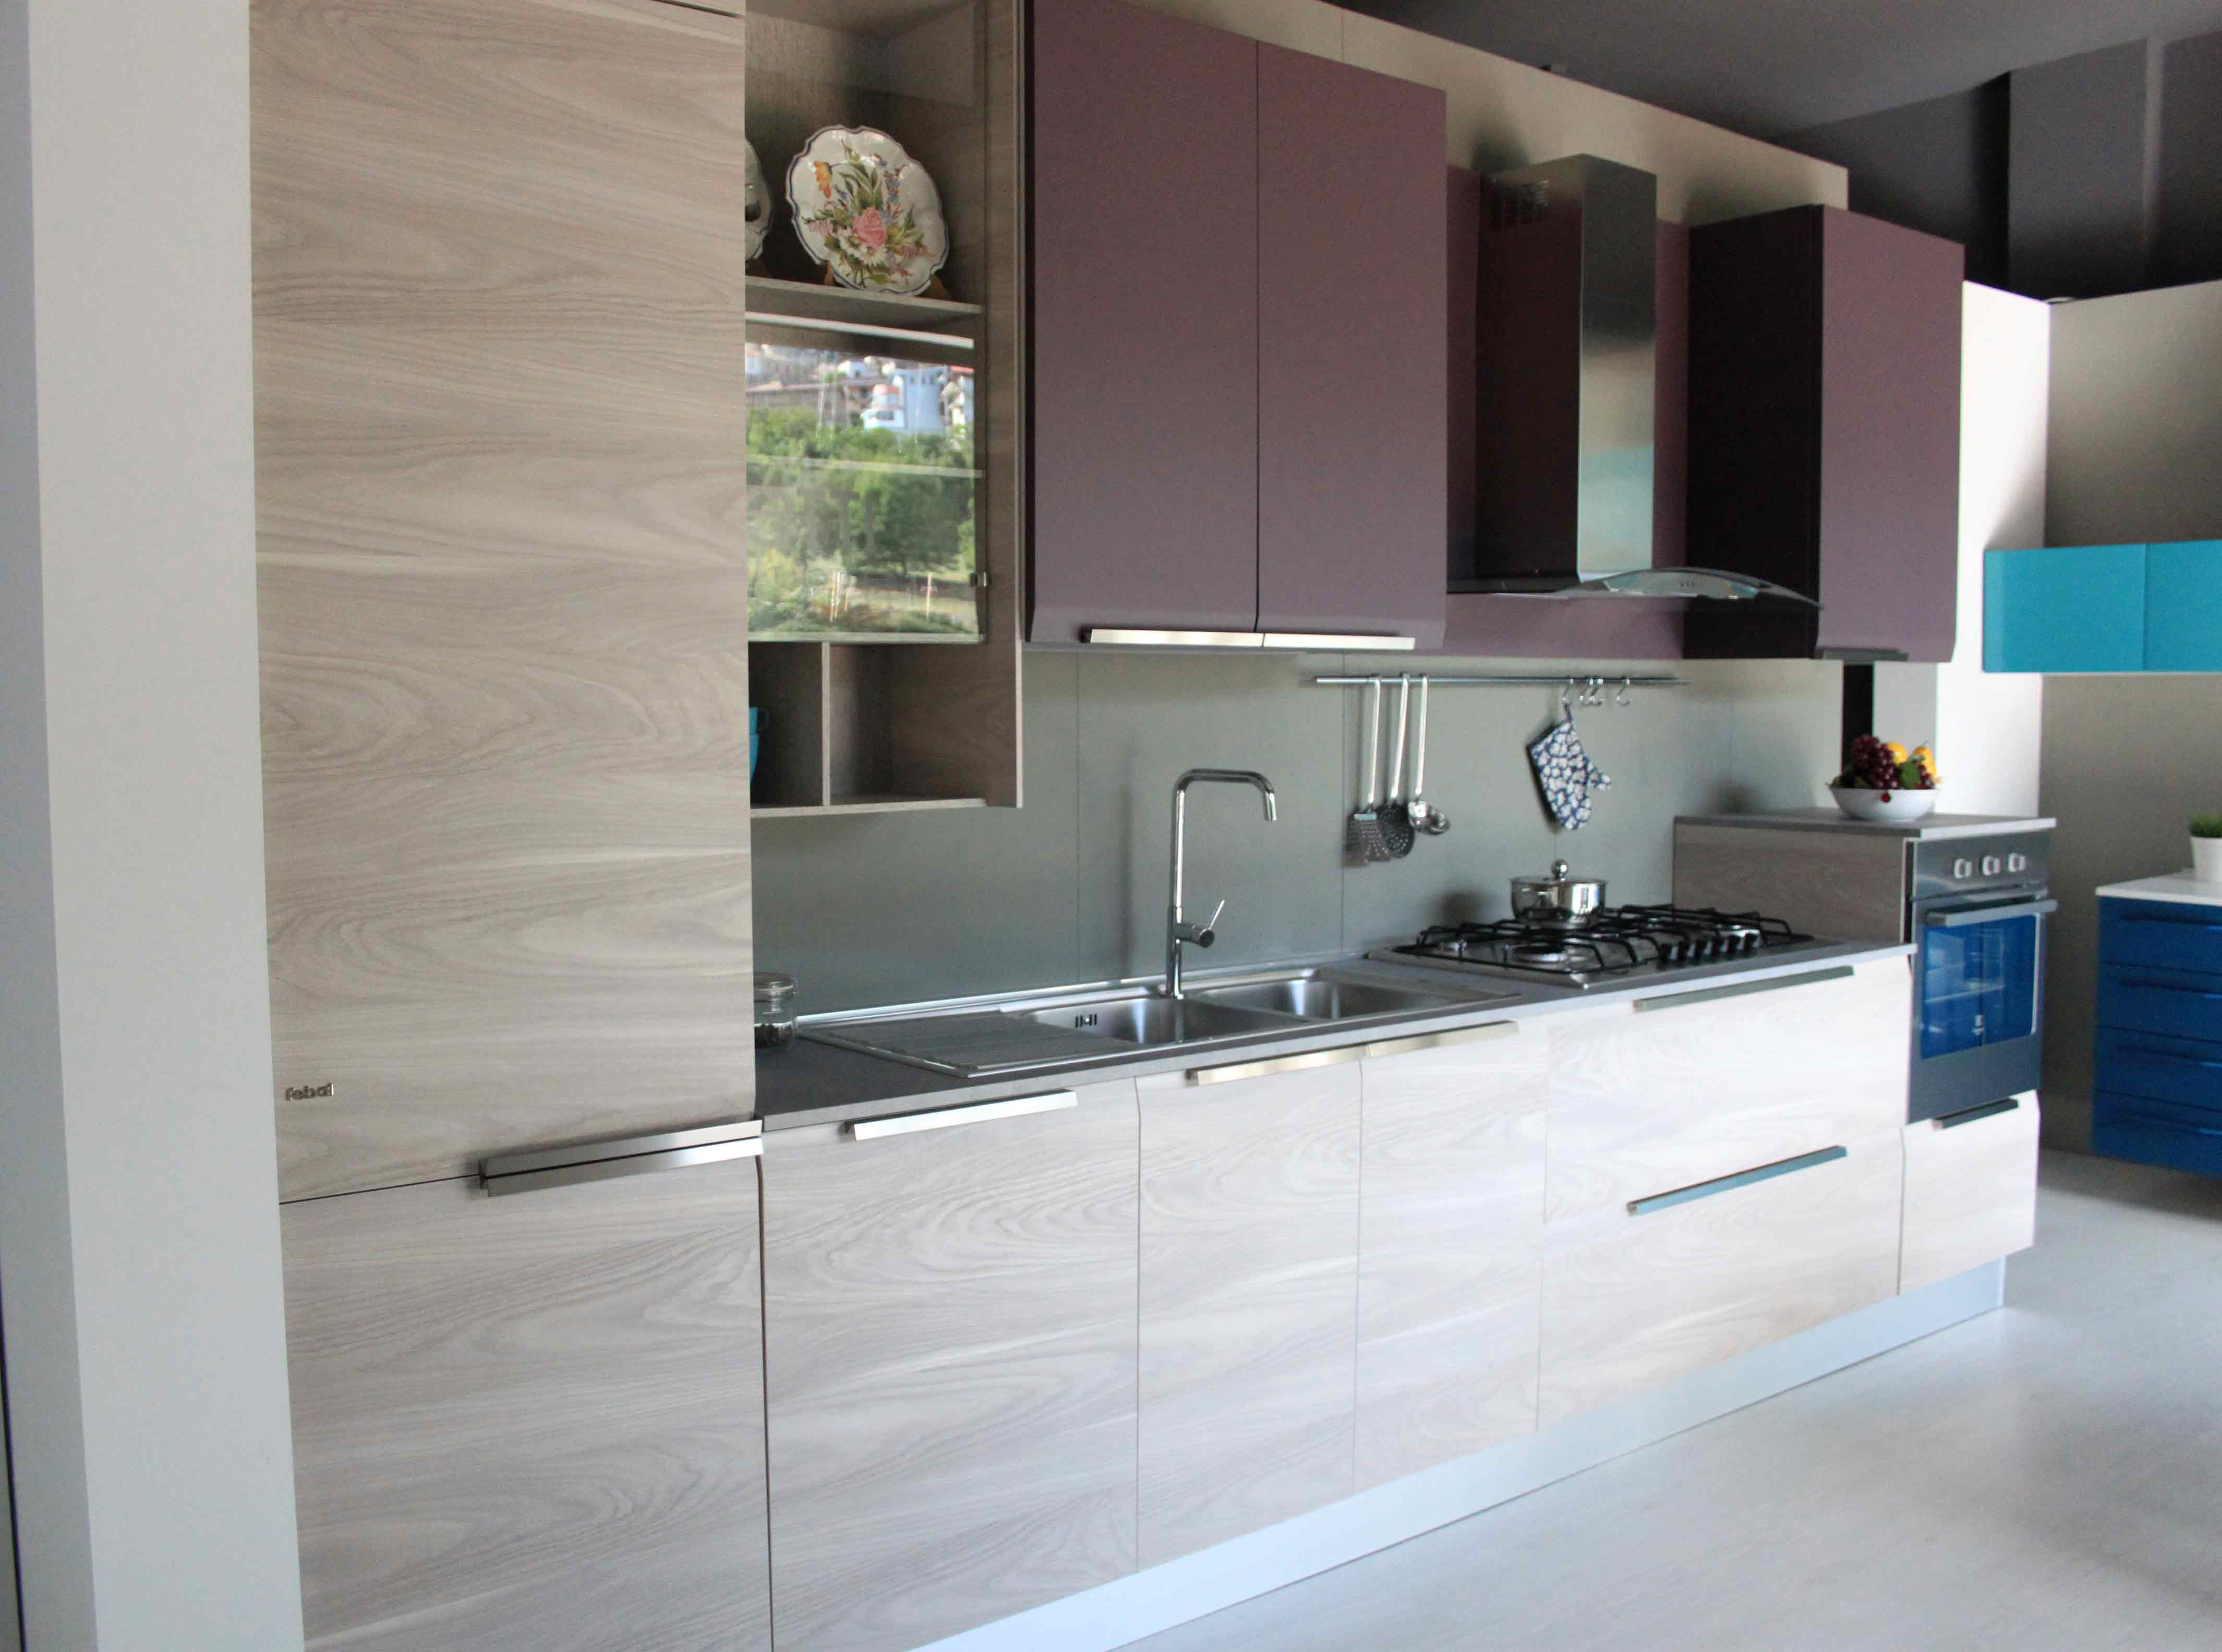 Cucina Mod. Chantal - Febal Casa - Leonetti Design